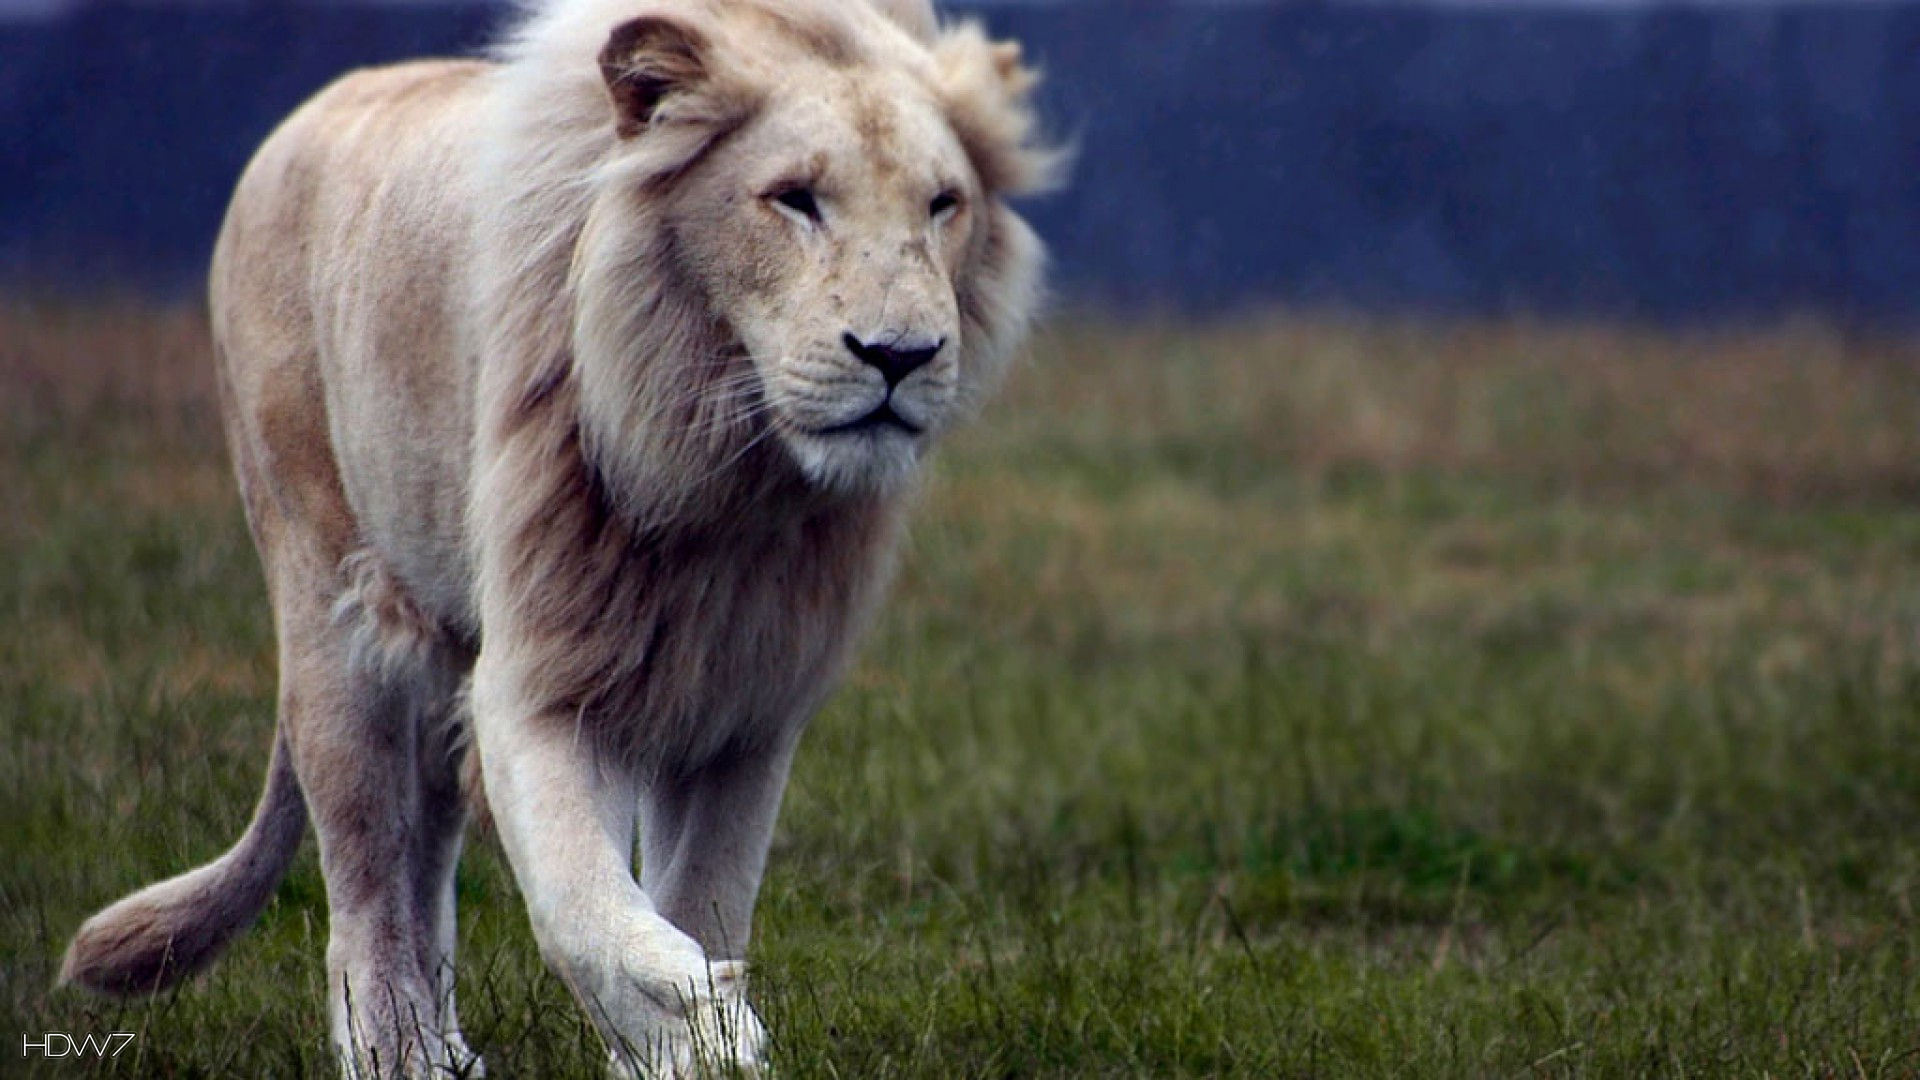 white lion hd wallpaper 2 1920x1080 HD wallpaper gallery 1920x1080